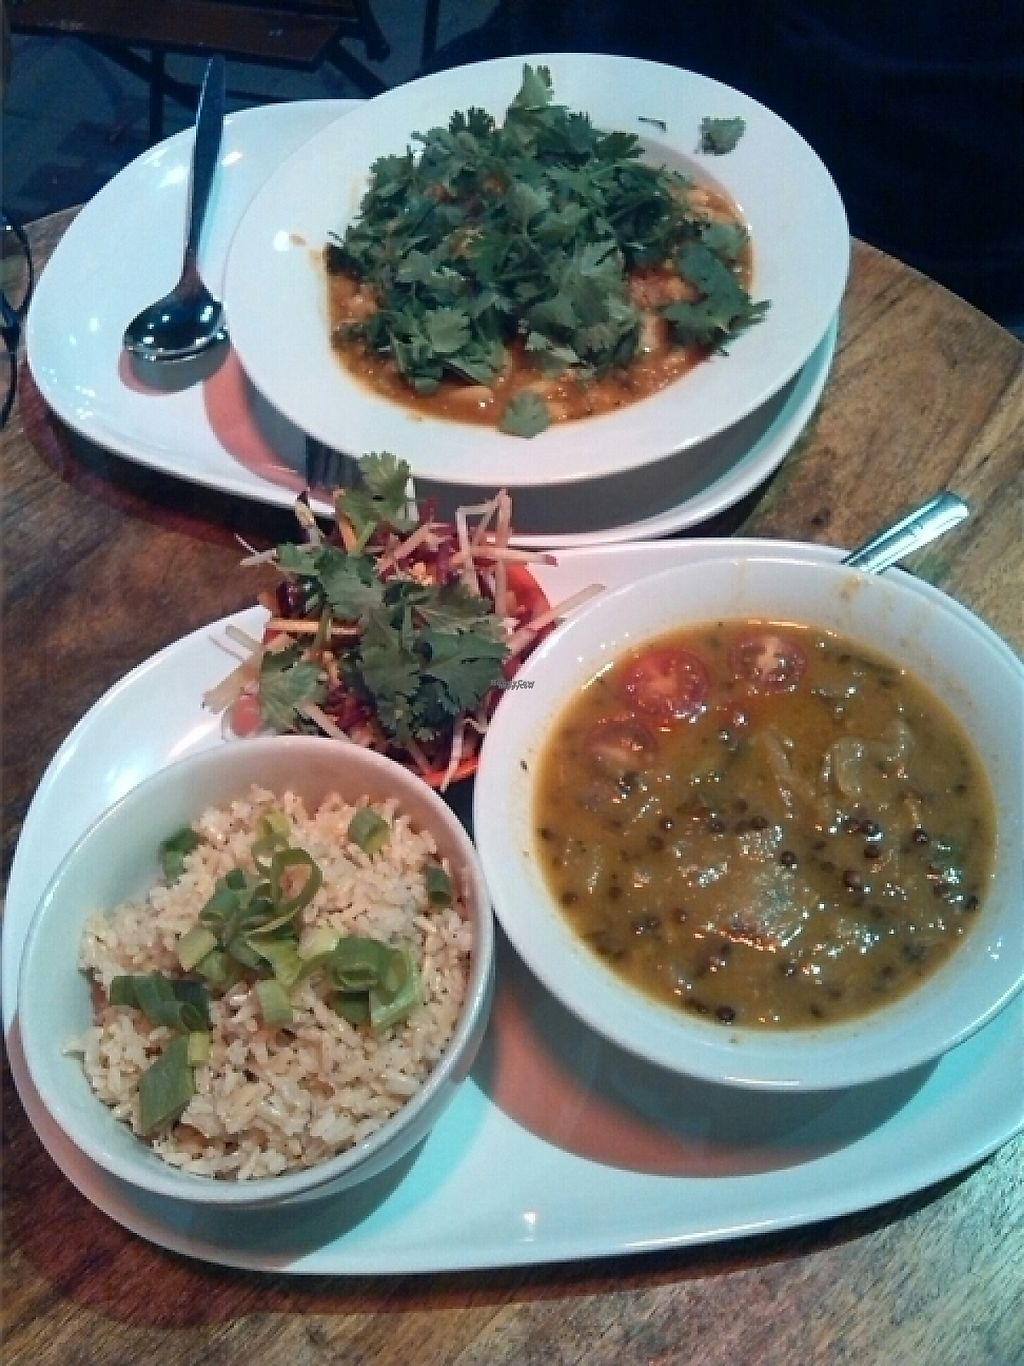 """Photo of Market - Dizengoff  by <a href=""""/members/profile/Jay%20Watson"""">Jay Watson</a> <br/>White beans & Thai black lentils  <br/> April 5, 2017  - <a href='/contact/abuse/image/55896/245010'>Report</a>"""